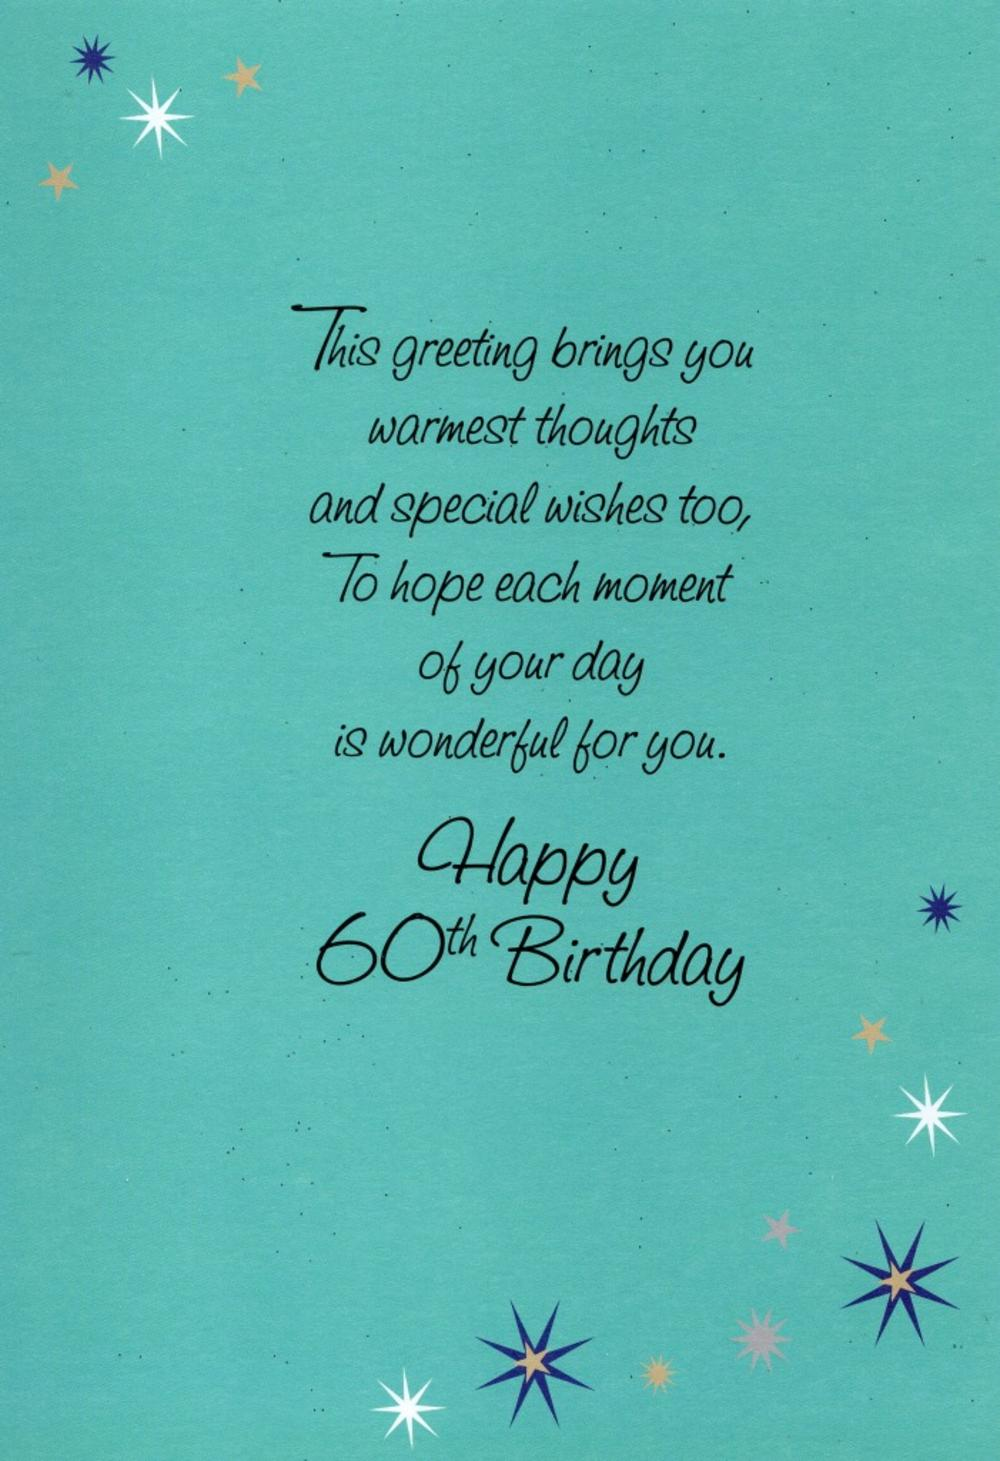 Happy 60th Birthday Greeting Card Cards Love Kates Happy 60th Birthday Wishes